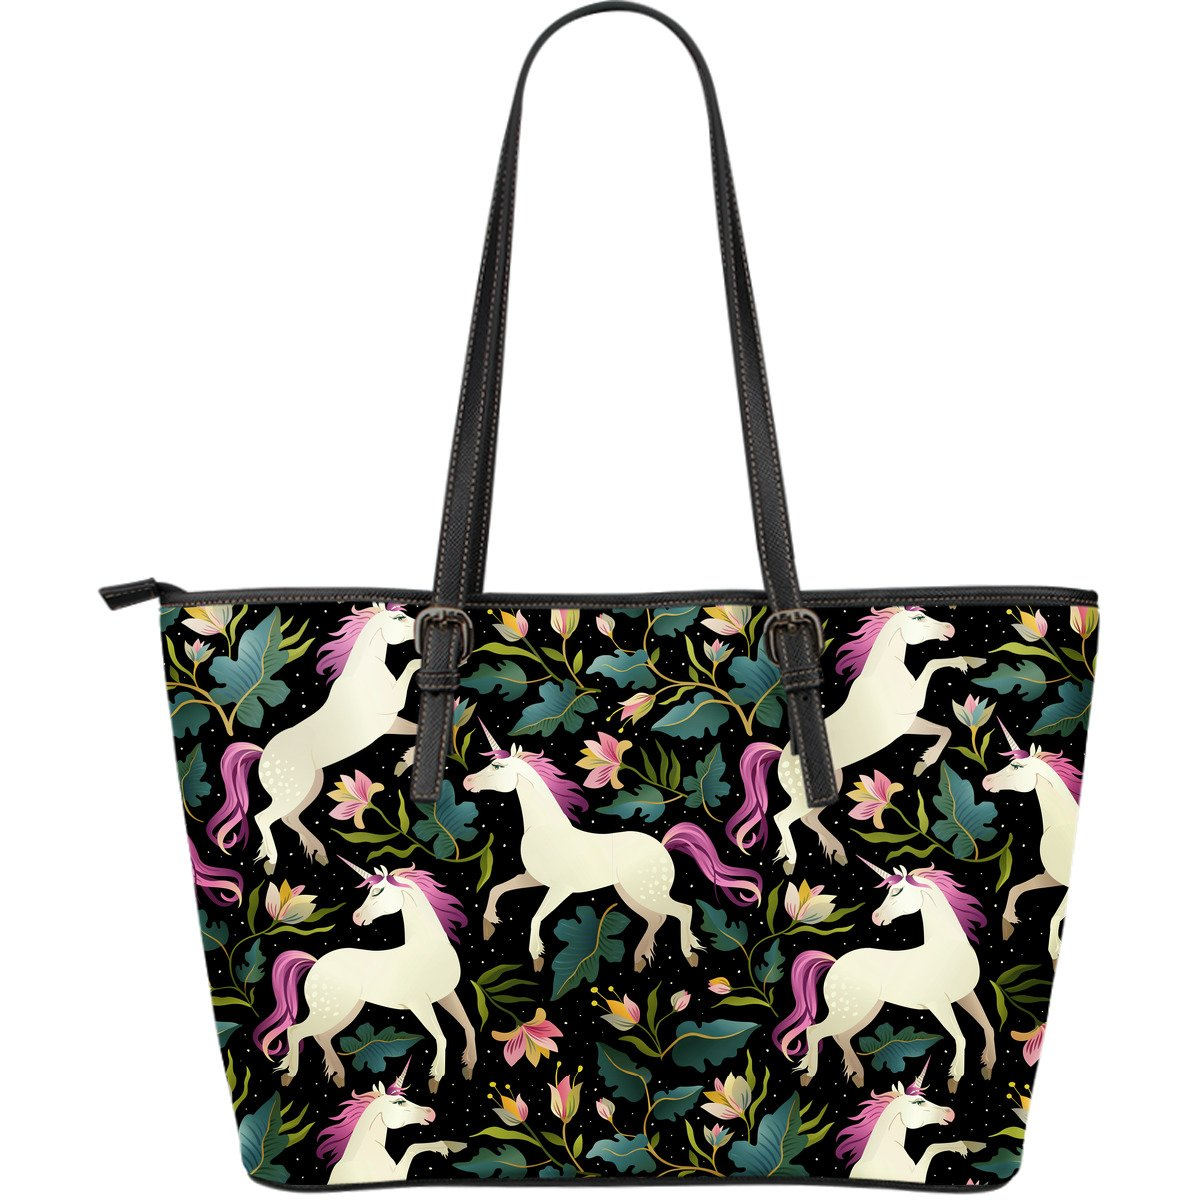 Unicorn in Floral Large Leather Tote Bag